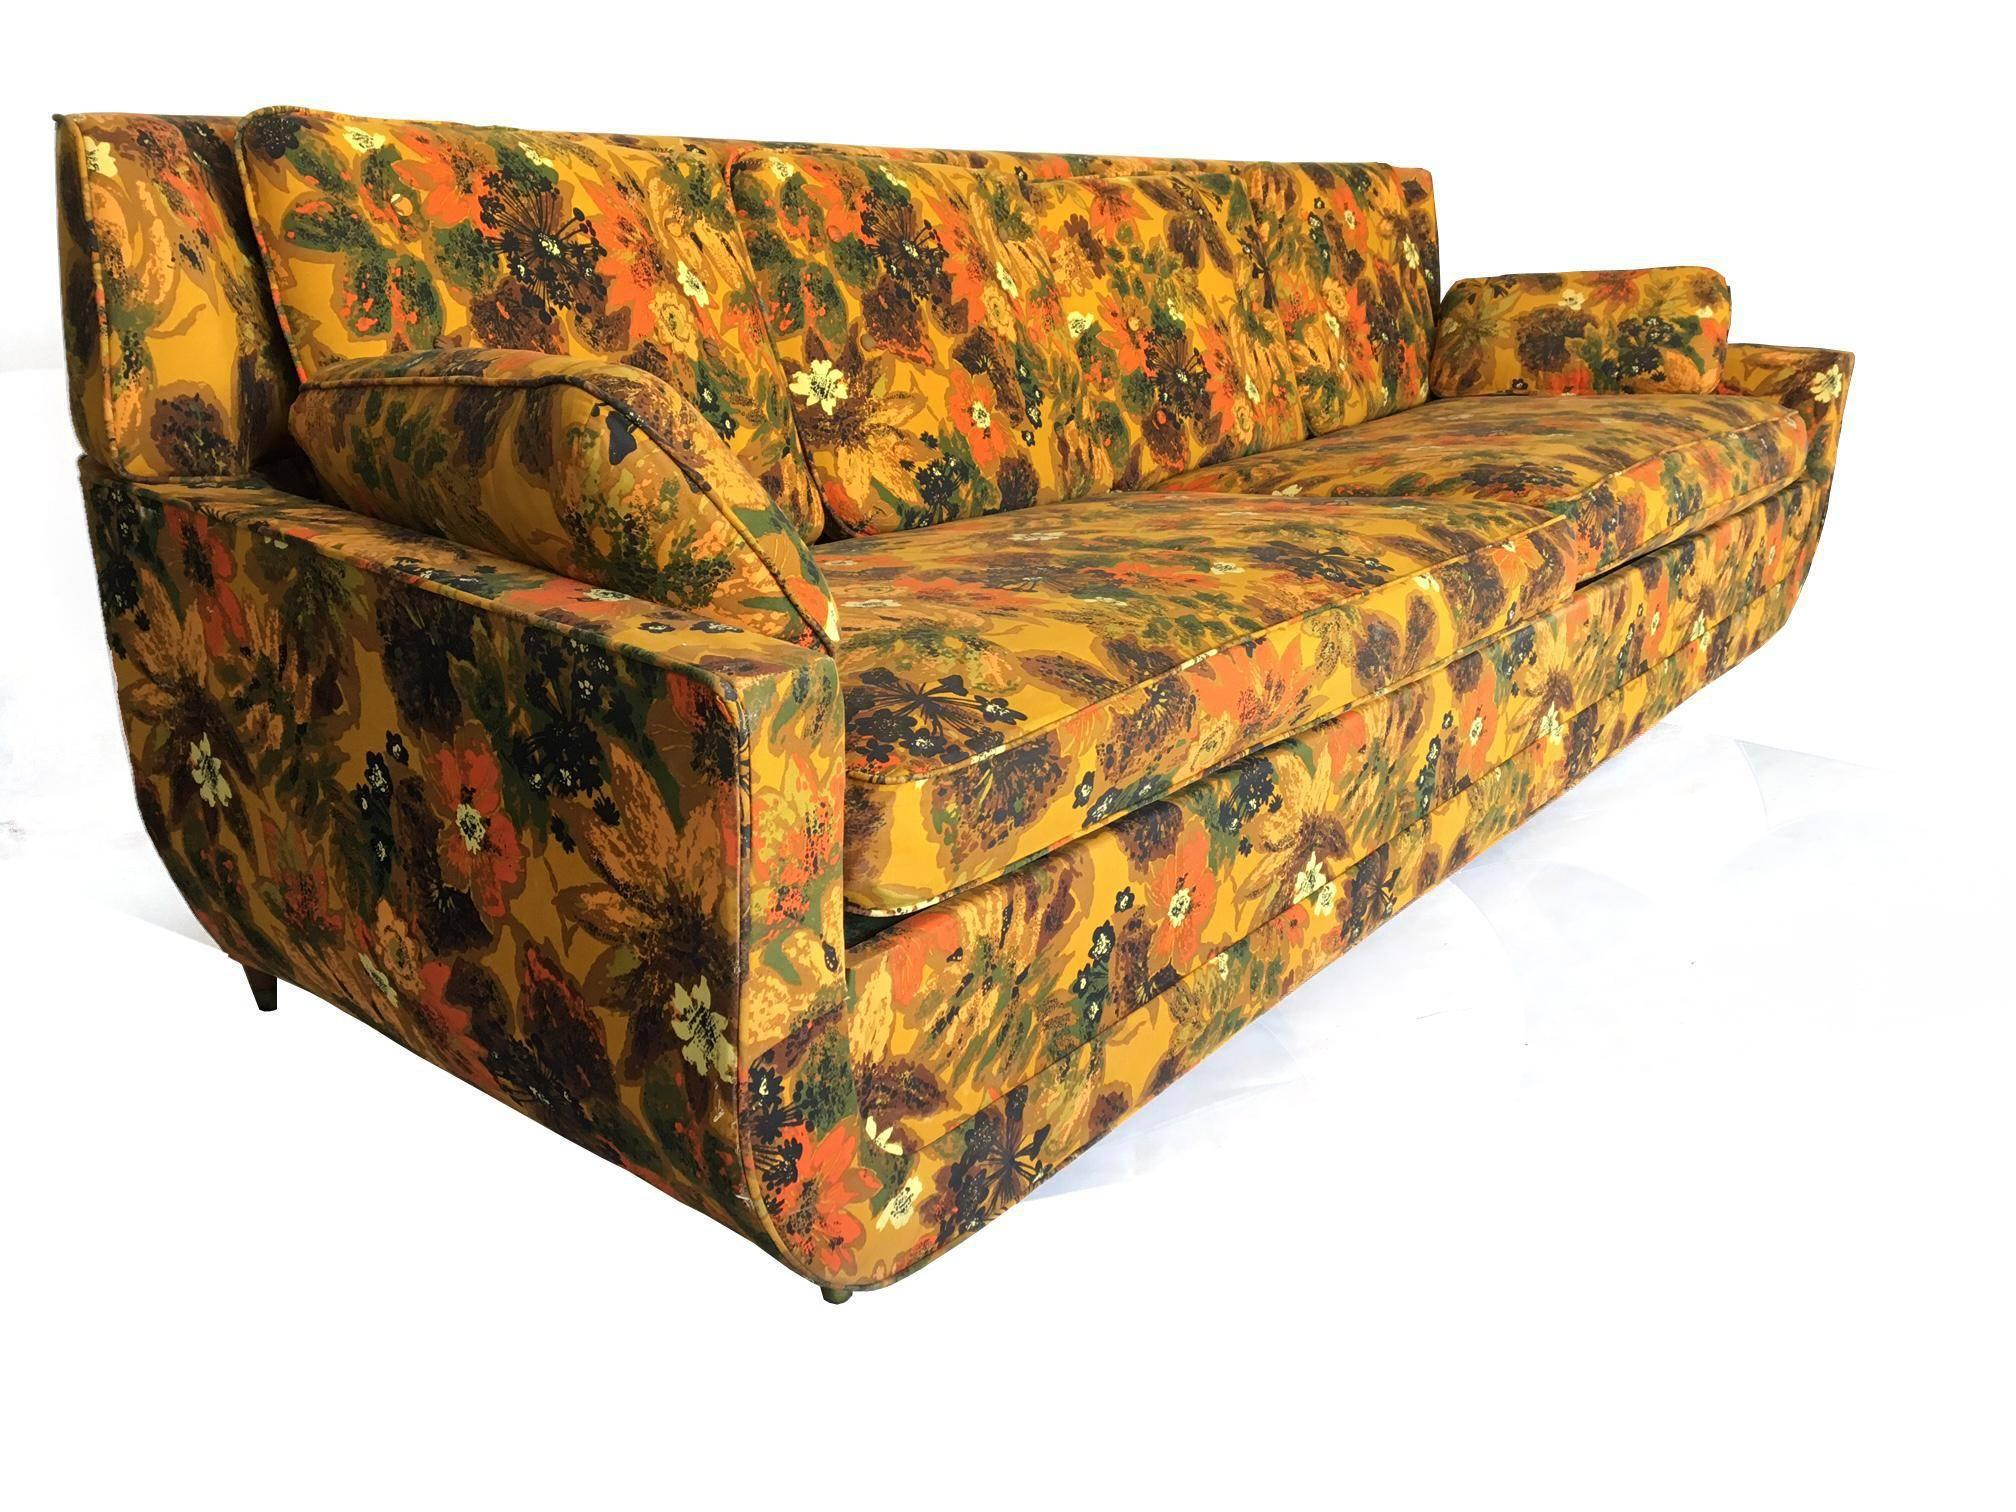 1967 Vintage Bernard Castro Mid Century Modern Floral Sleeper Sofa For Sale  At 1stdibs